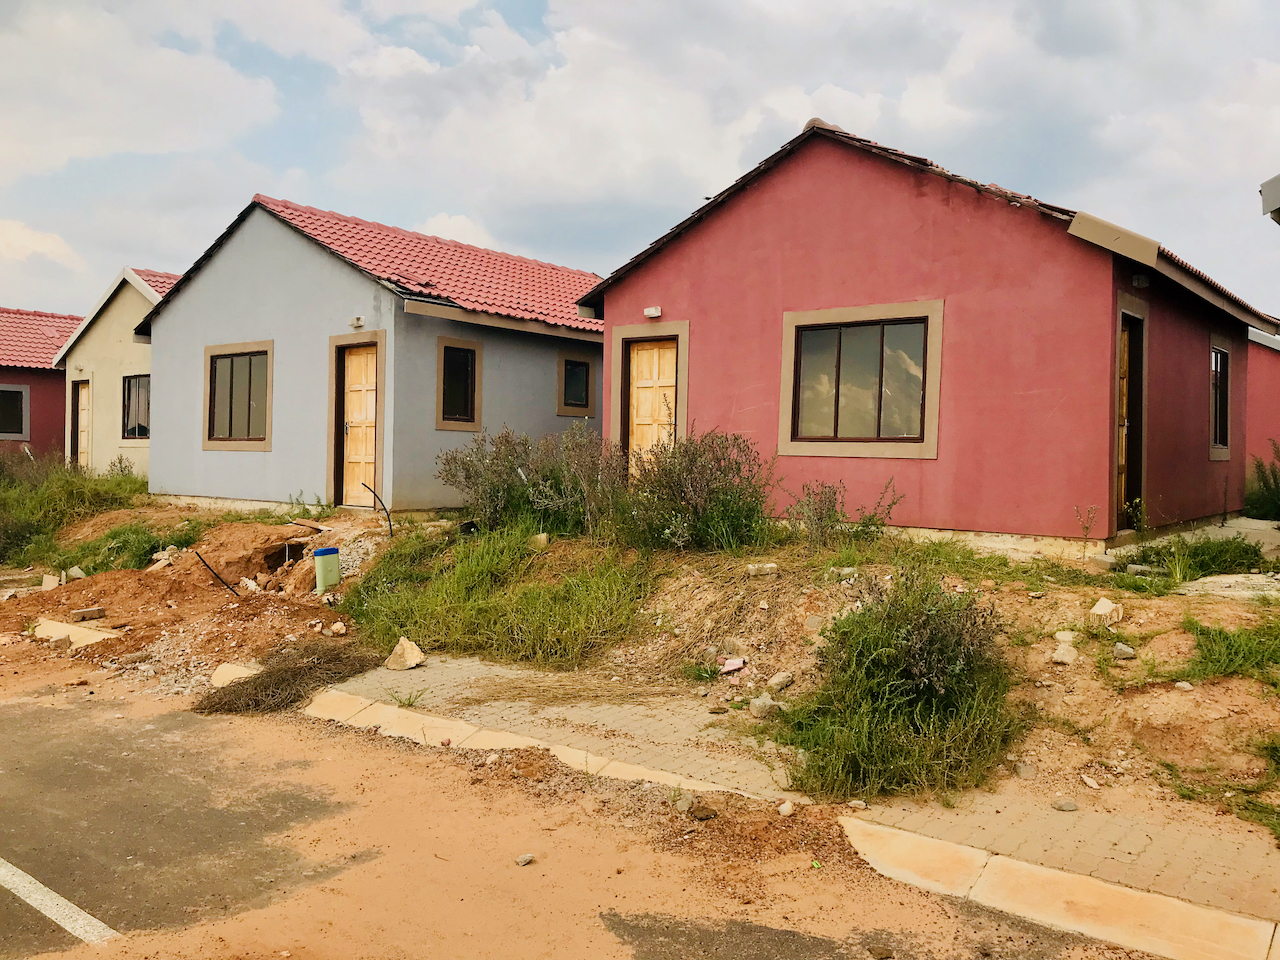 Tensions rise as 600 RDP houses stand empty in Nigel